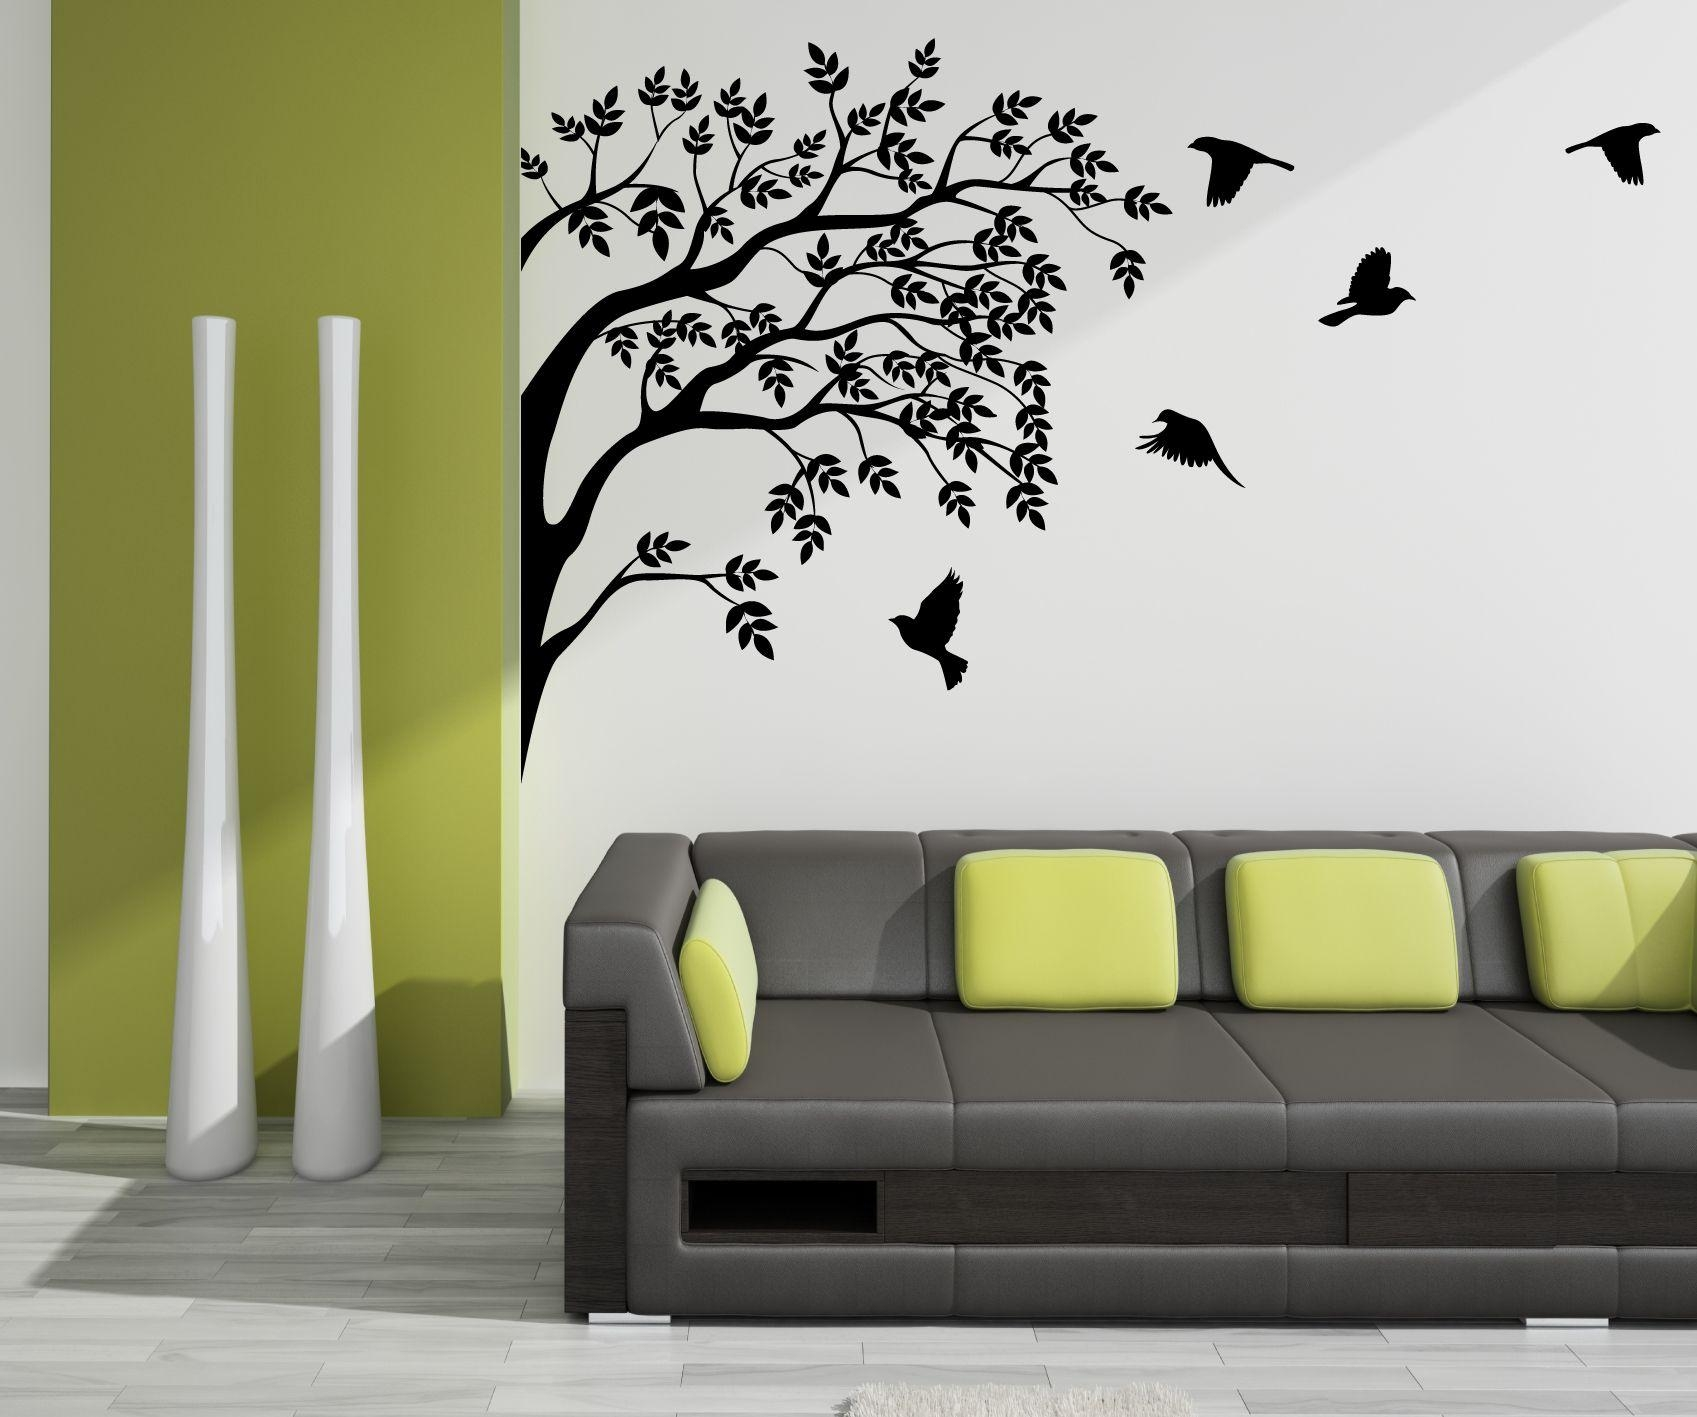 Simple Wall Stickers For Bedrooms Interior Des #10075 With Regard To Wall Art Designs (Image 6 of 20)